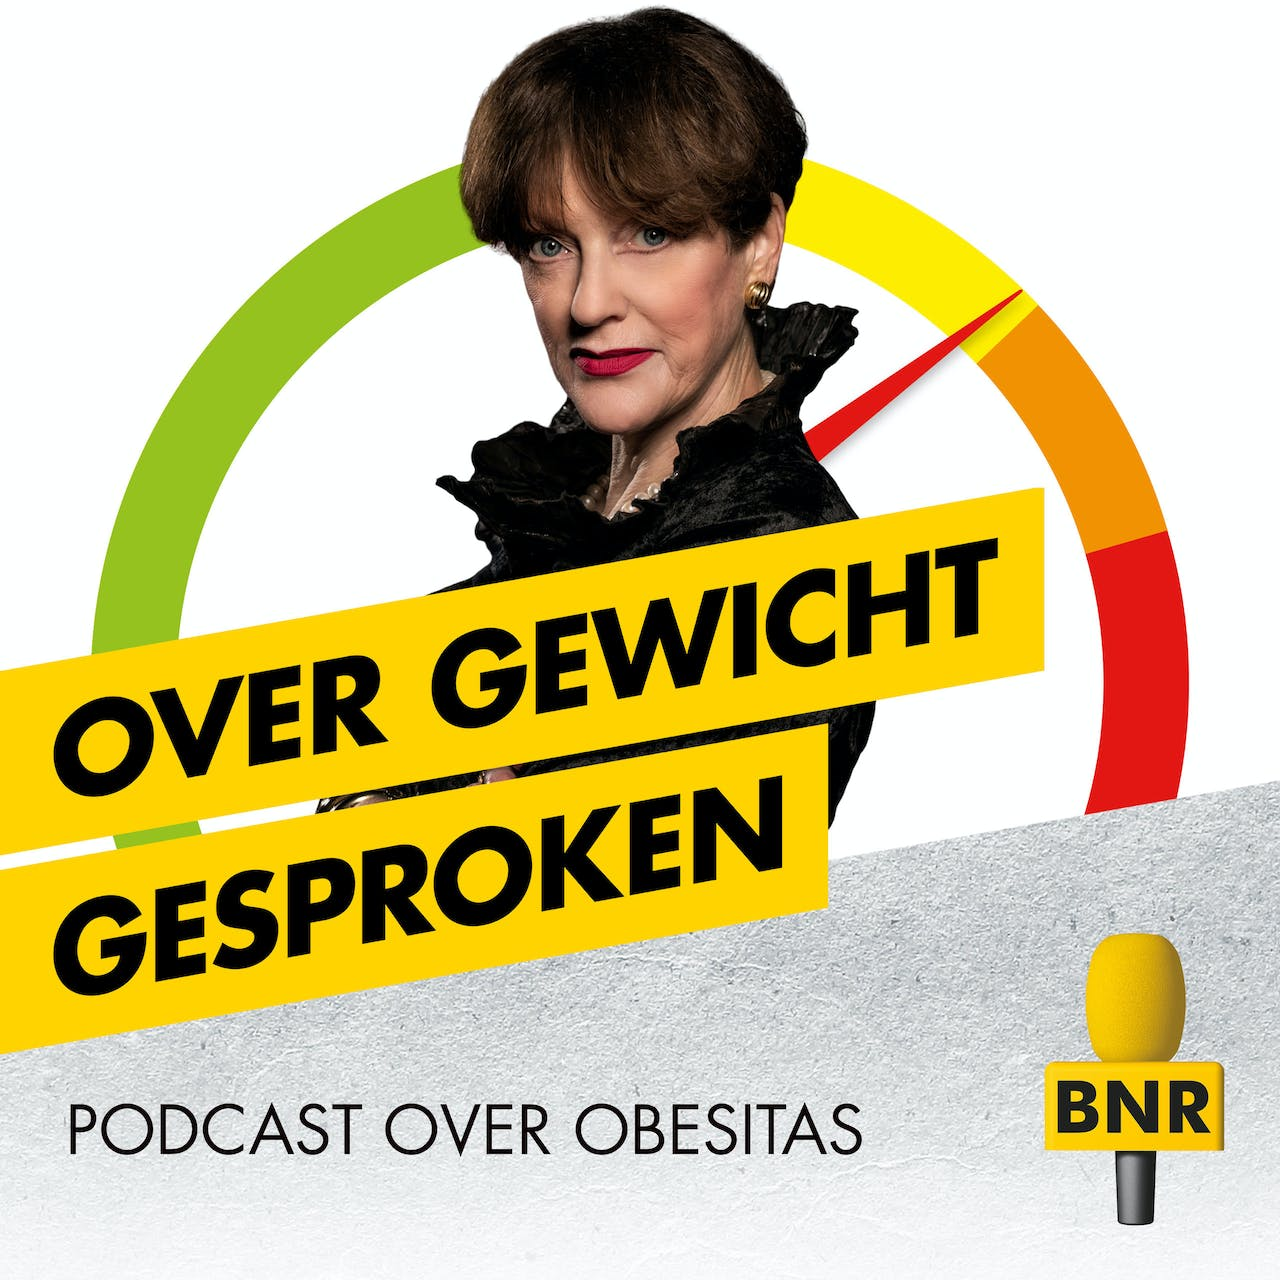 Over Gewicht Gesproken, de podcast over obesitas